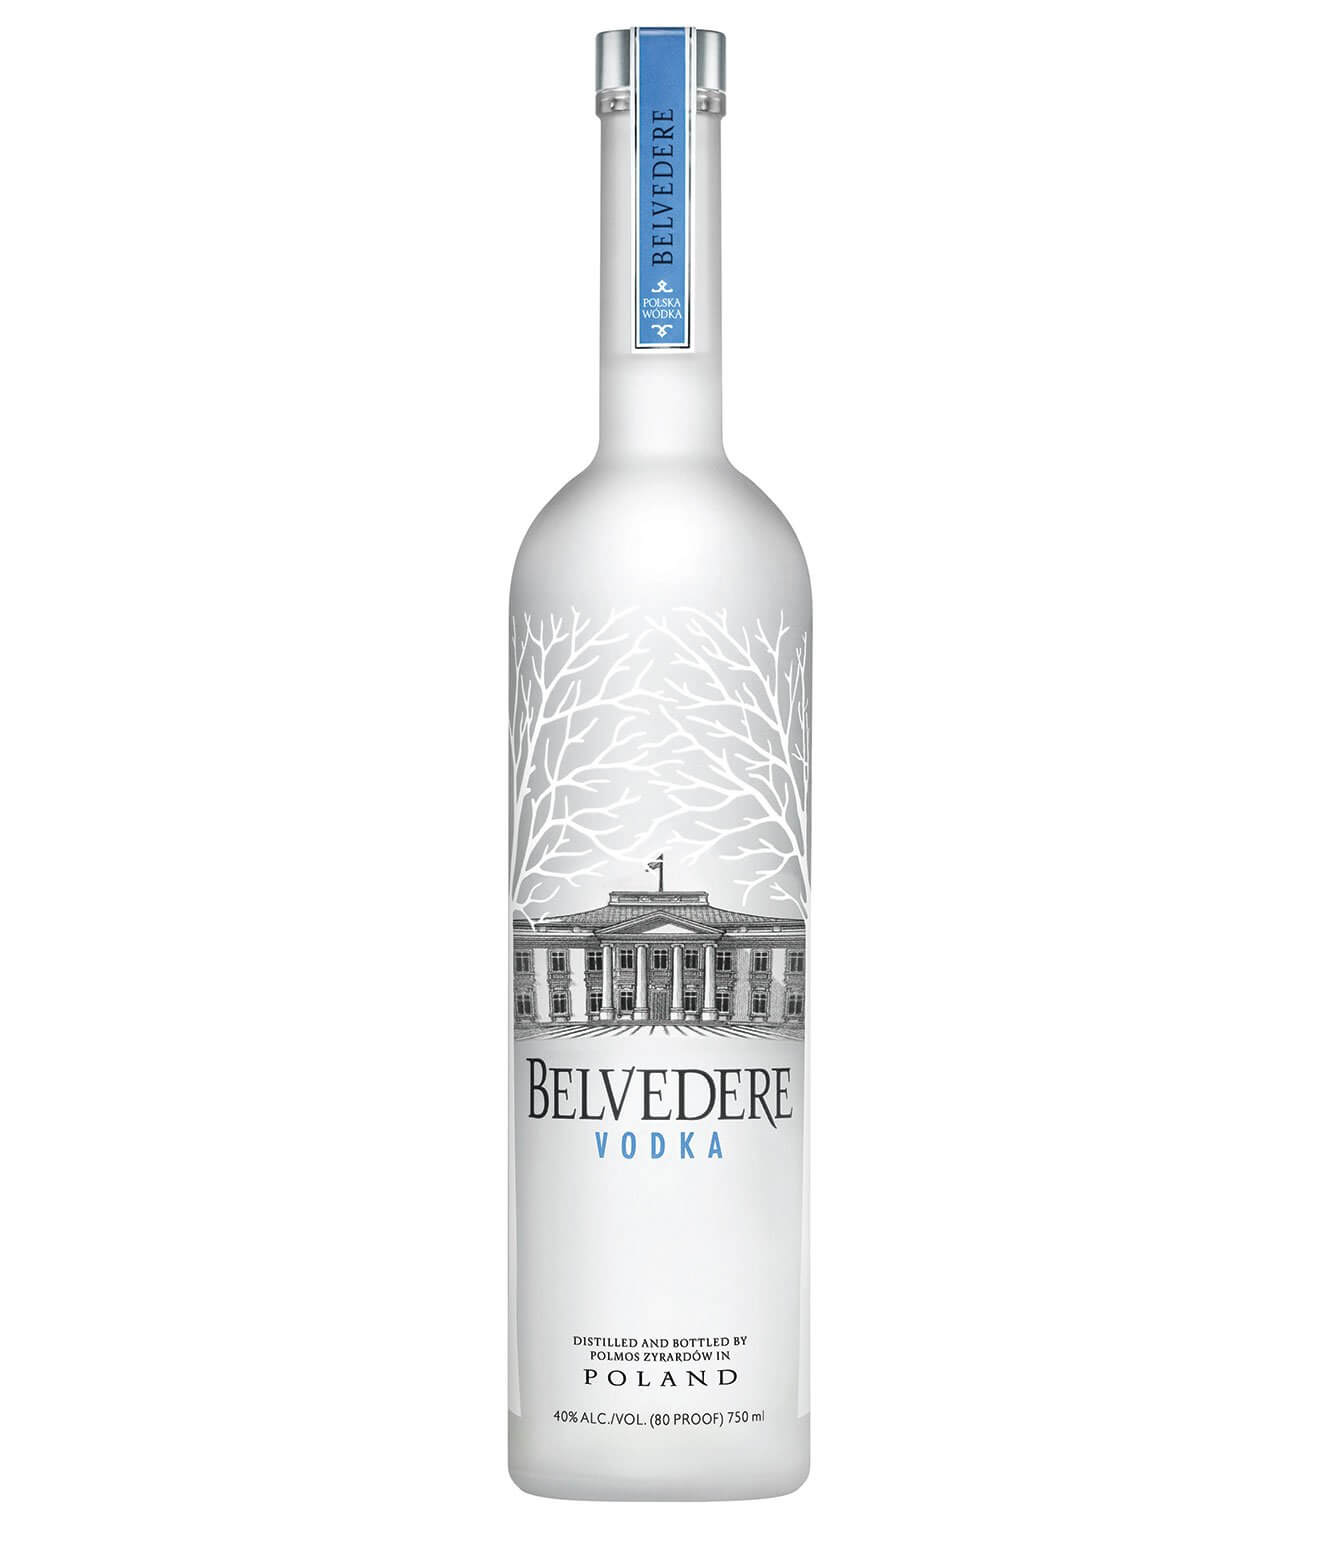 Belvedere Vodka, bottle on white